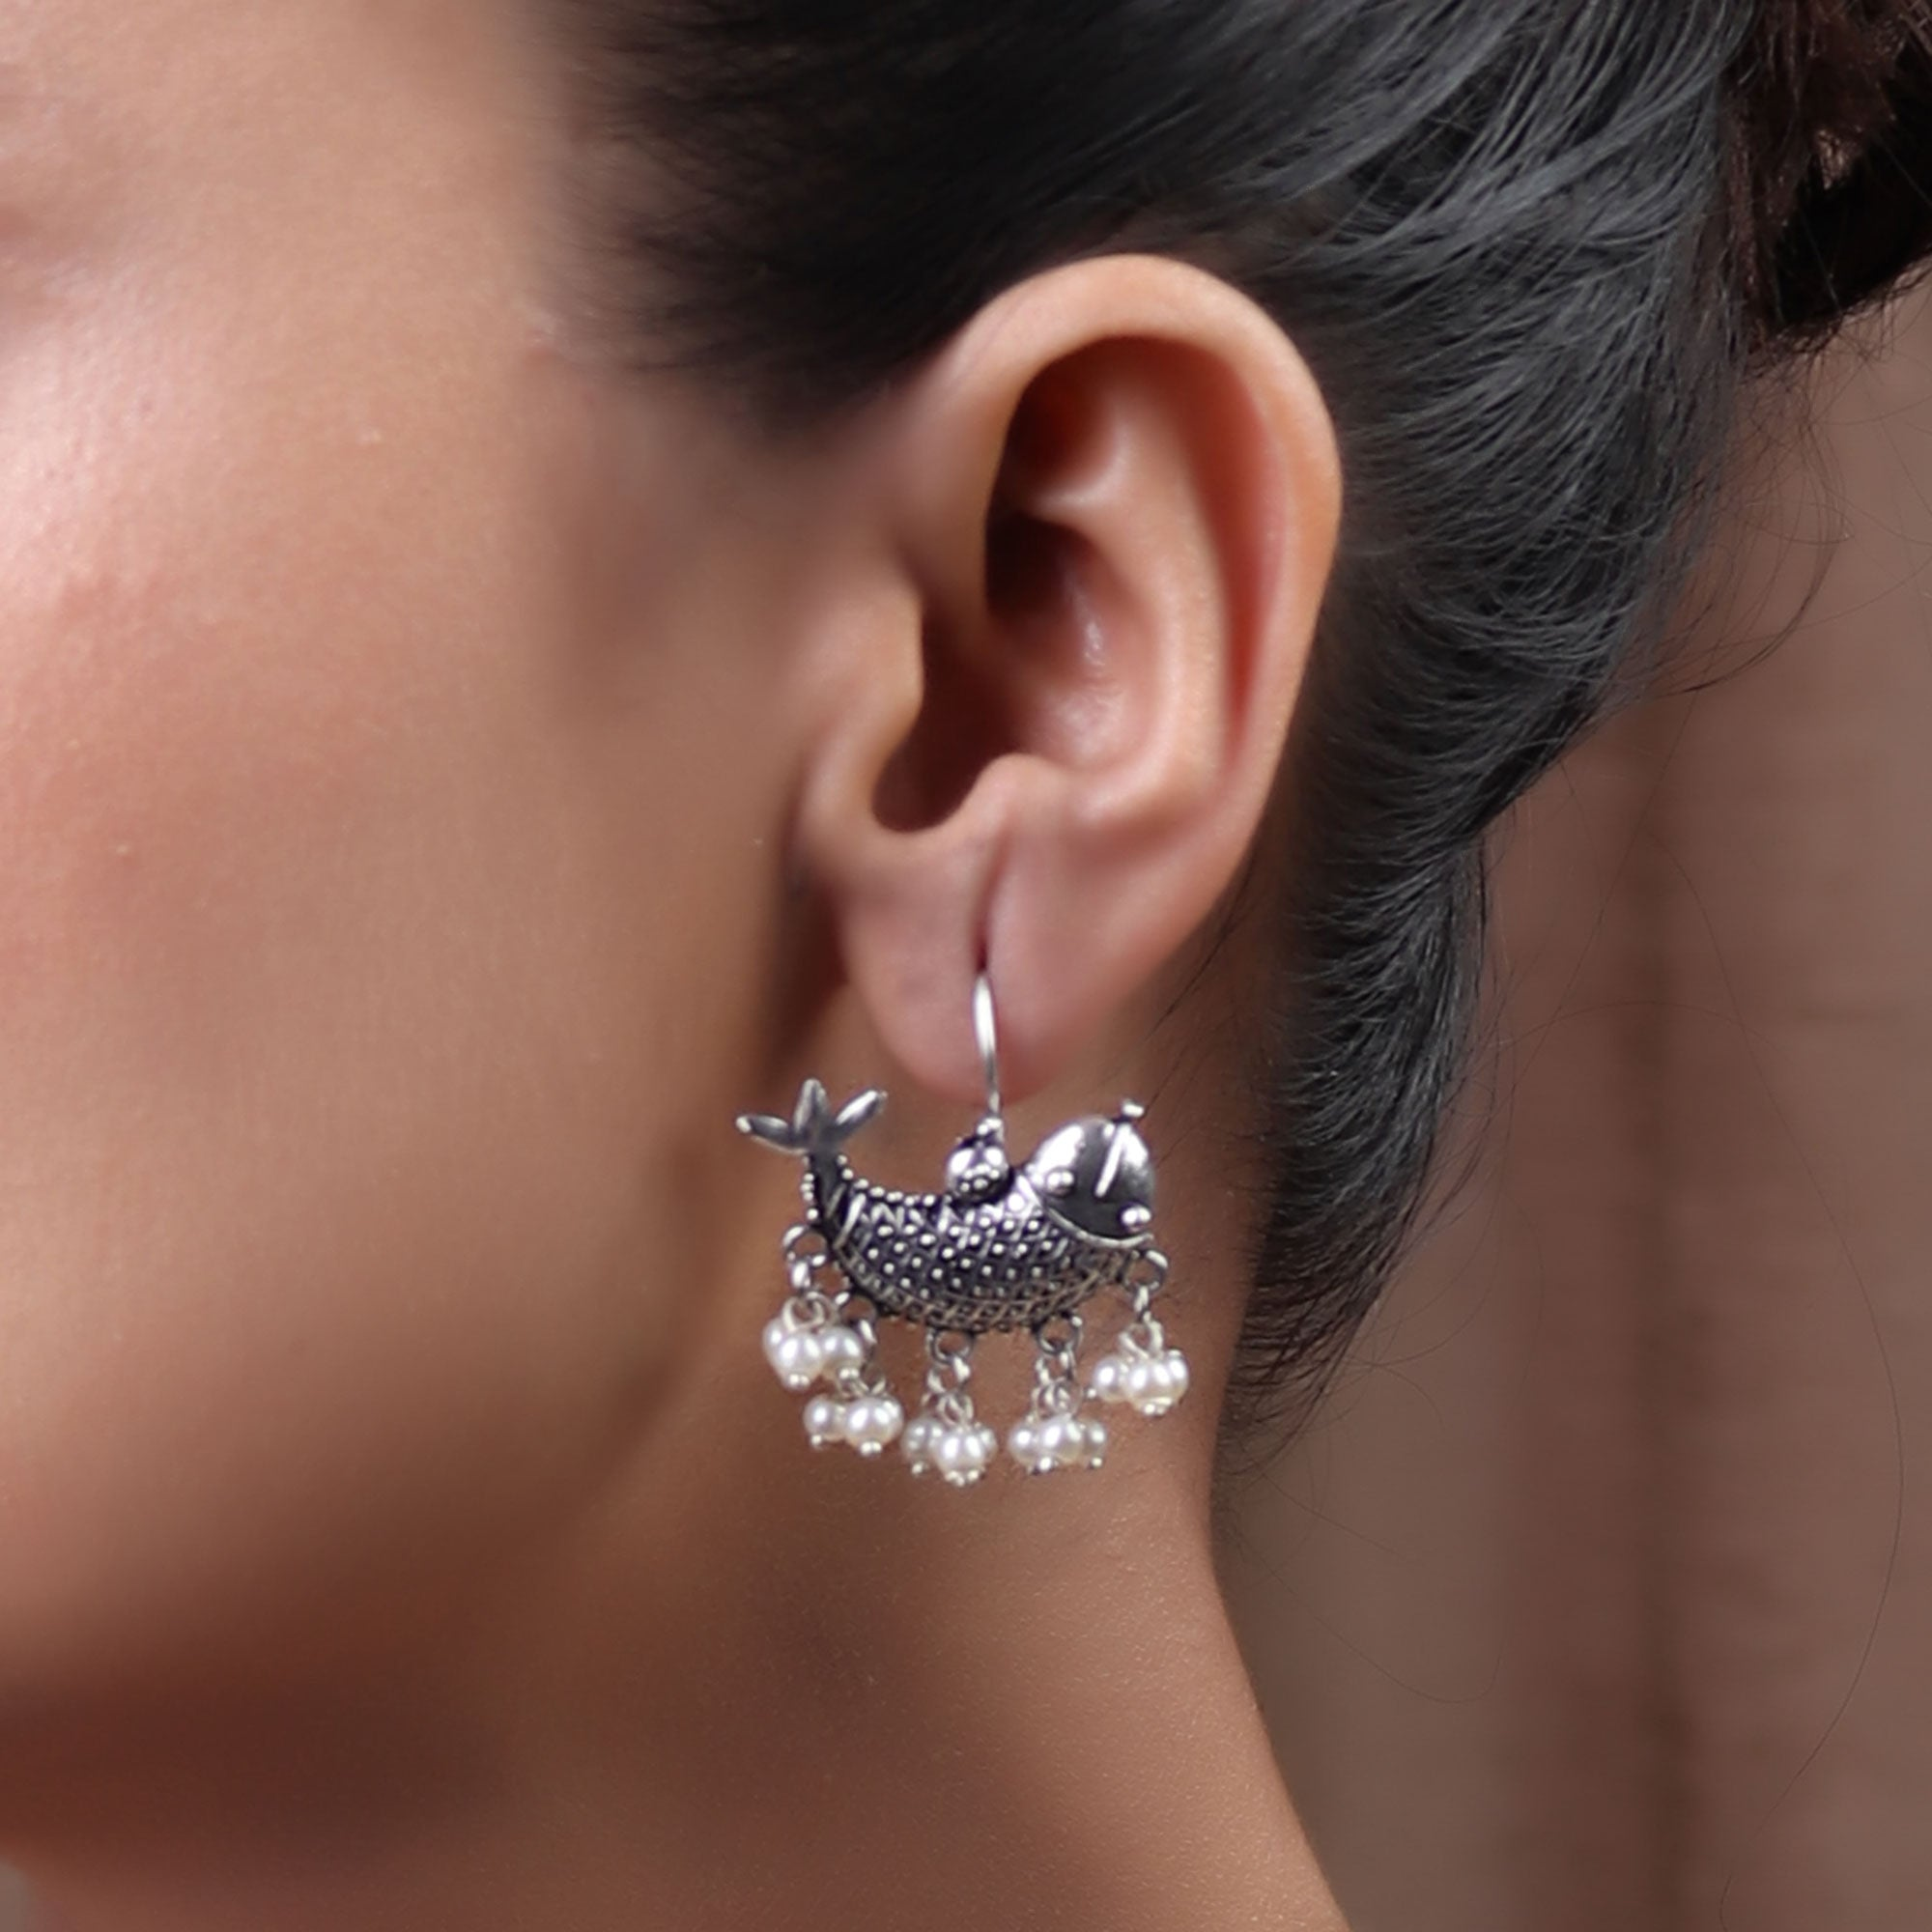 Earrings,The Treasured Dolphin Silver Look Alike Earring - Cippele Multi Store